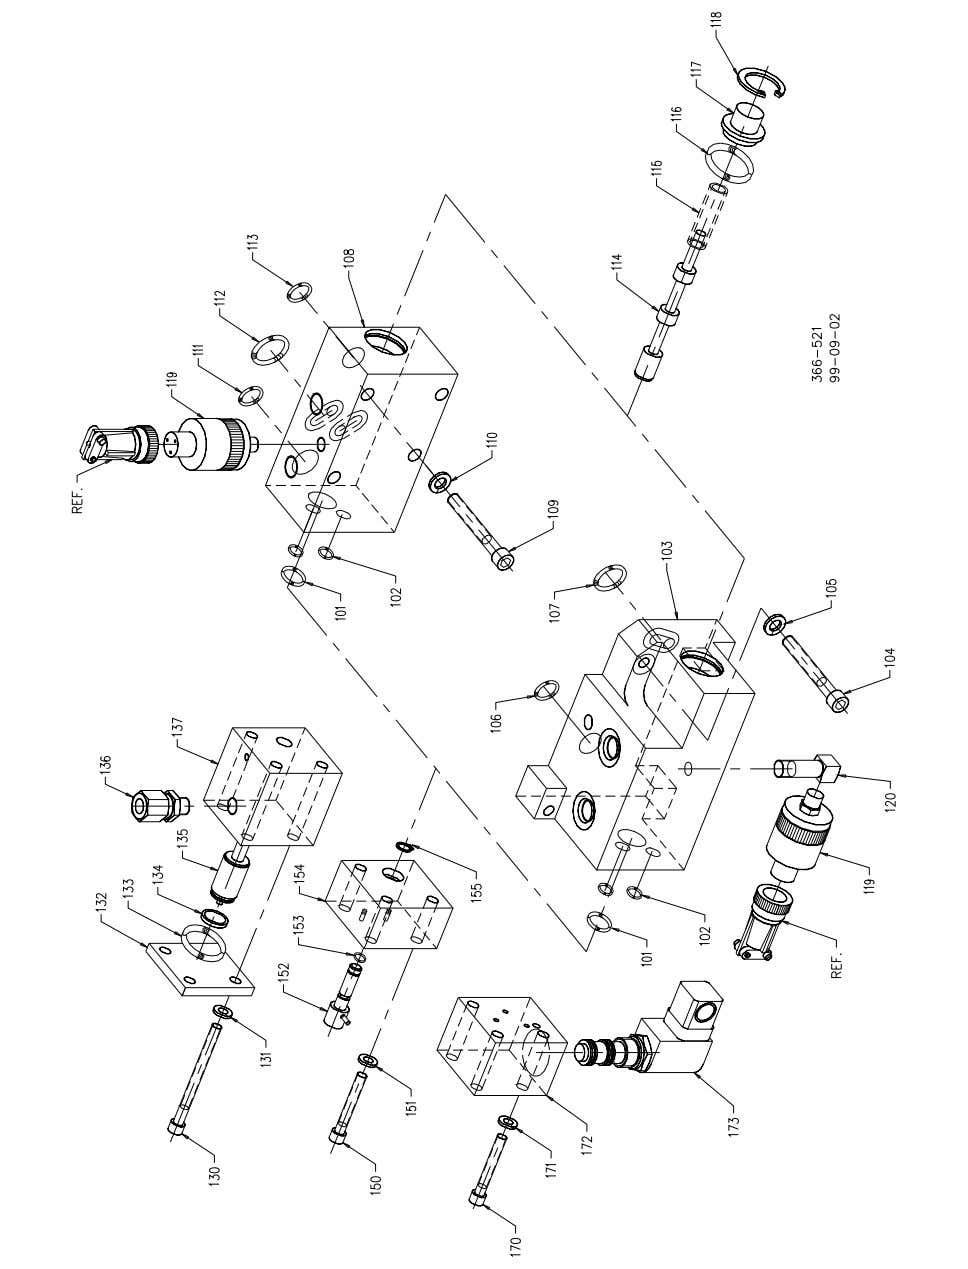 PG-EG Integral EG Actuator for PG Governors Manual 36637 Figure 4-2. Mode Select Block Exploded View